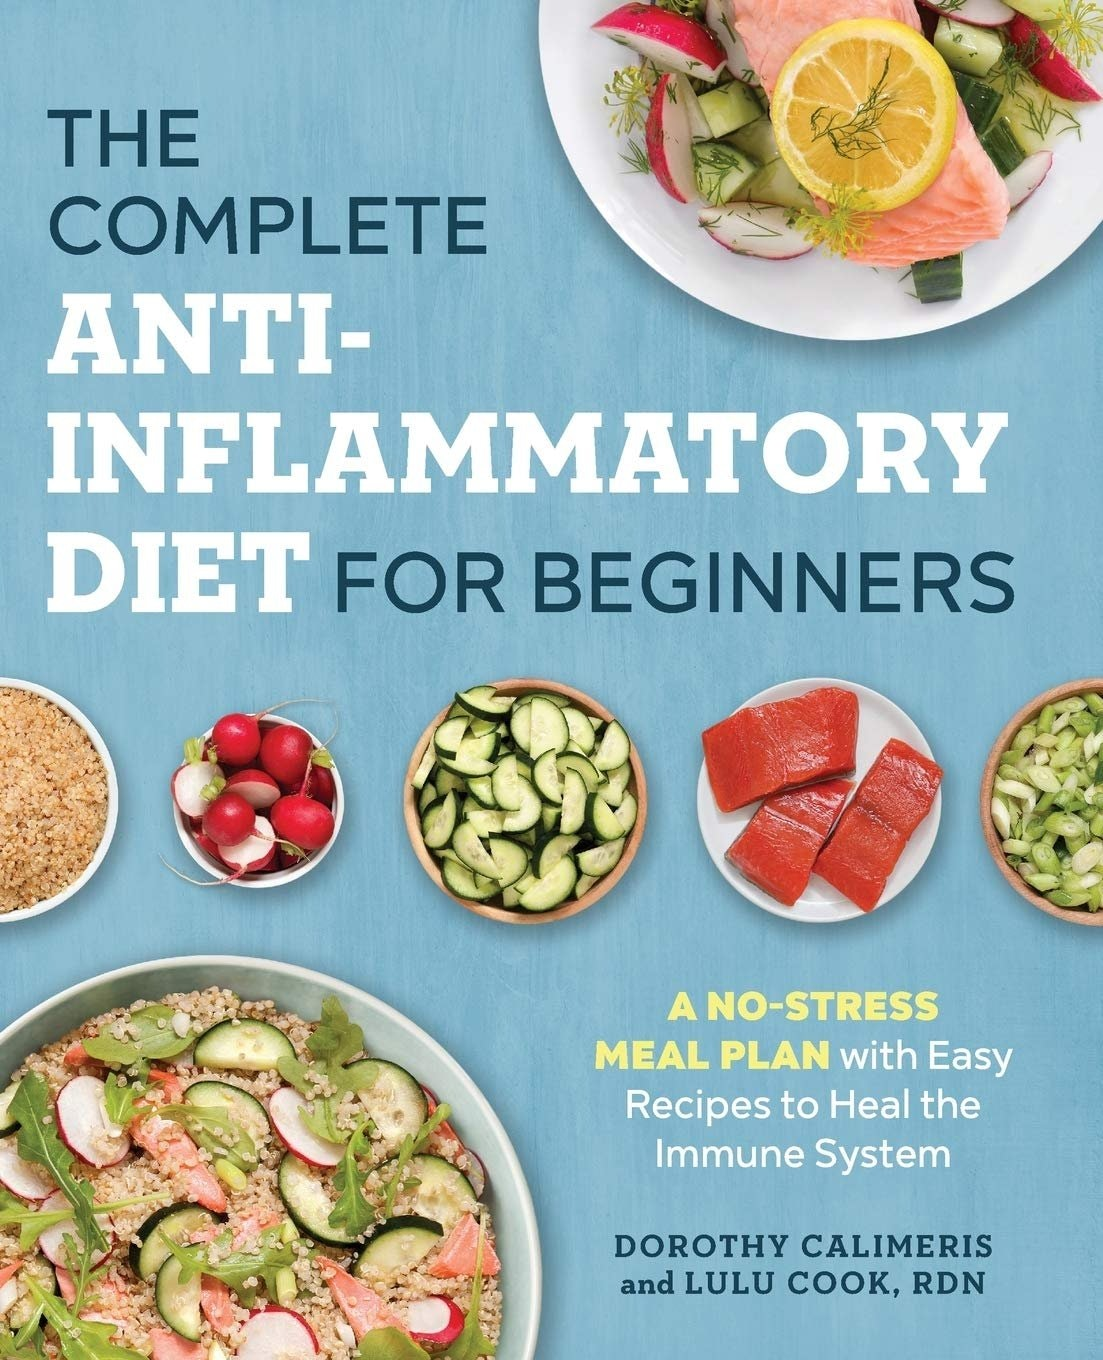 The Complete Anti-Inflamatory Diet for Beginners